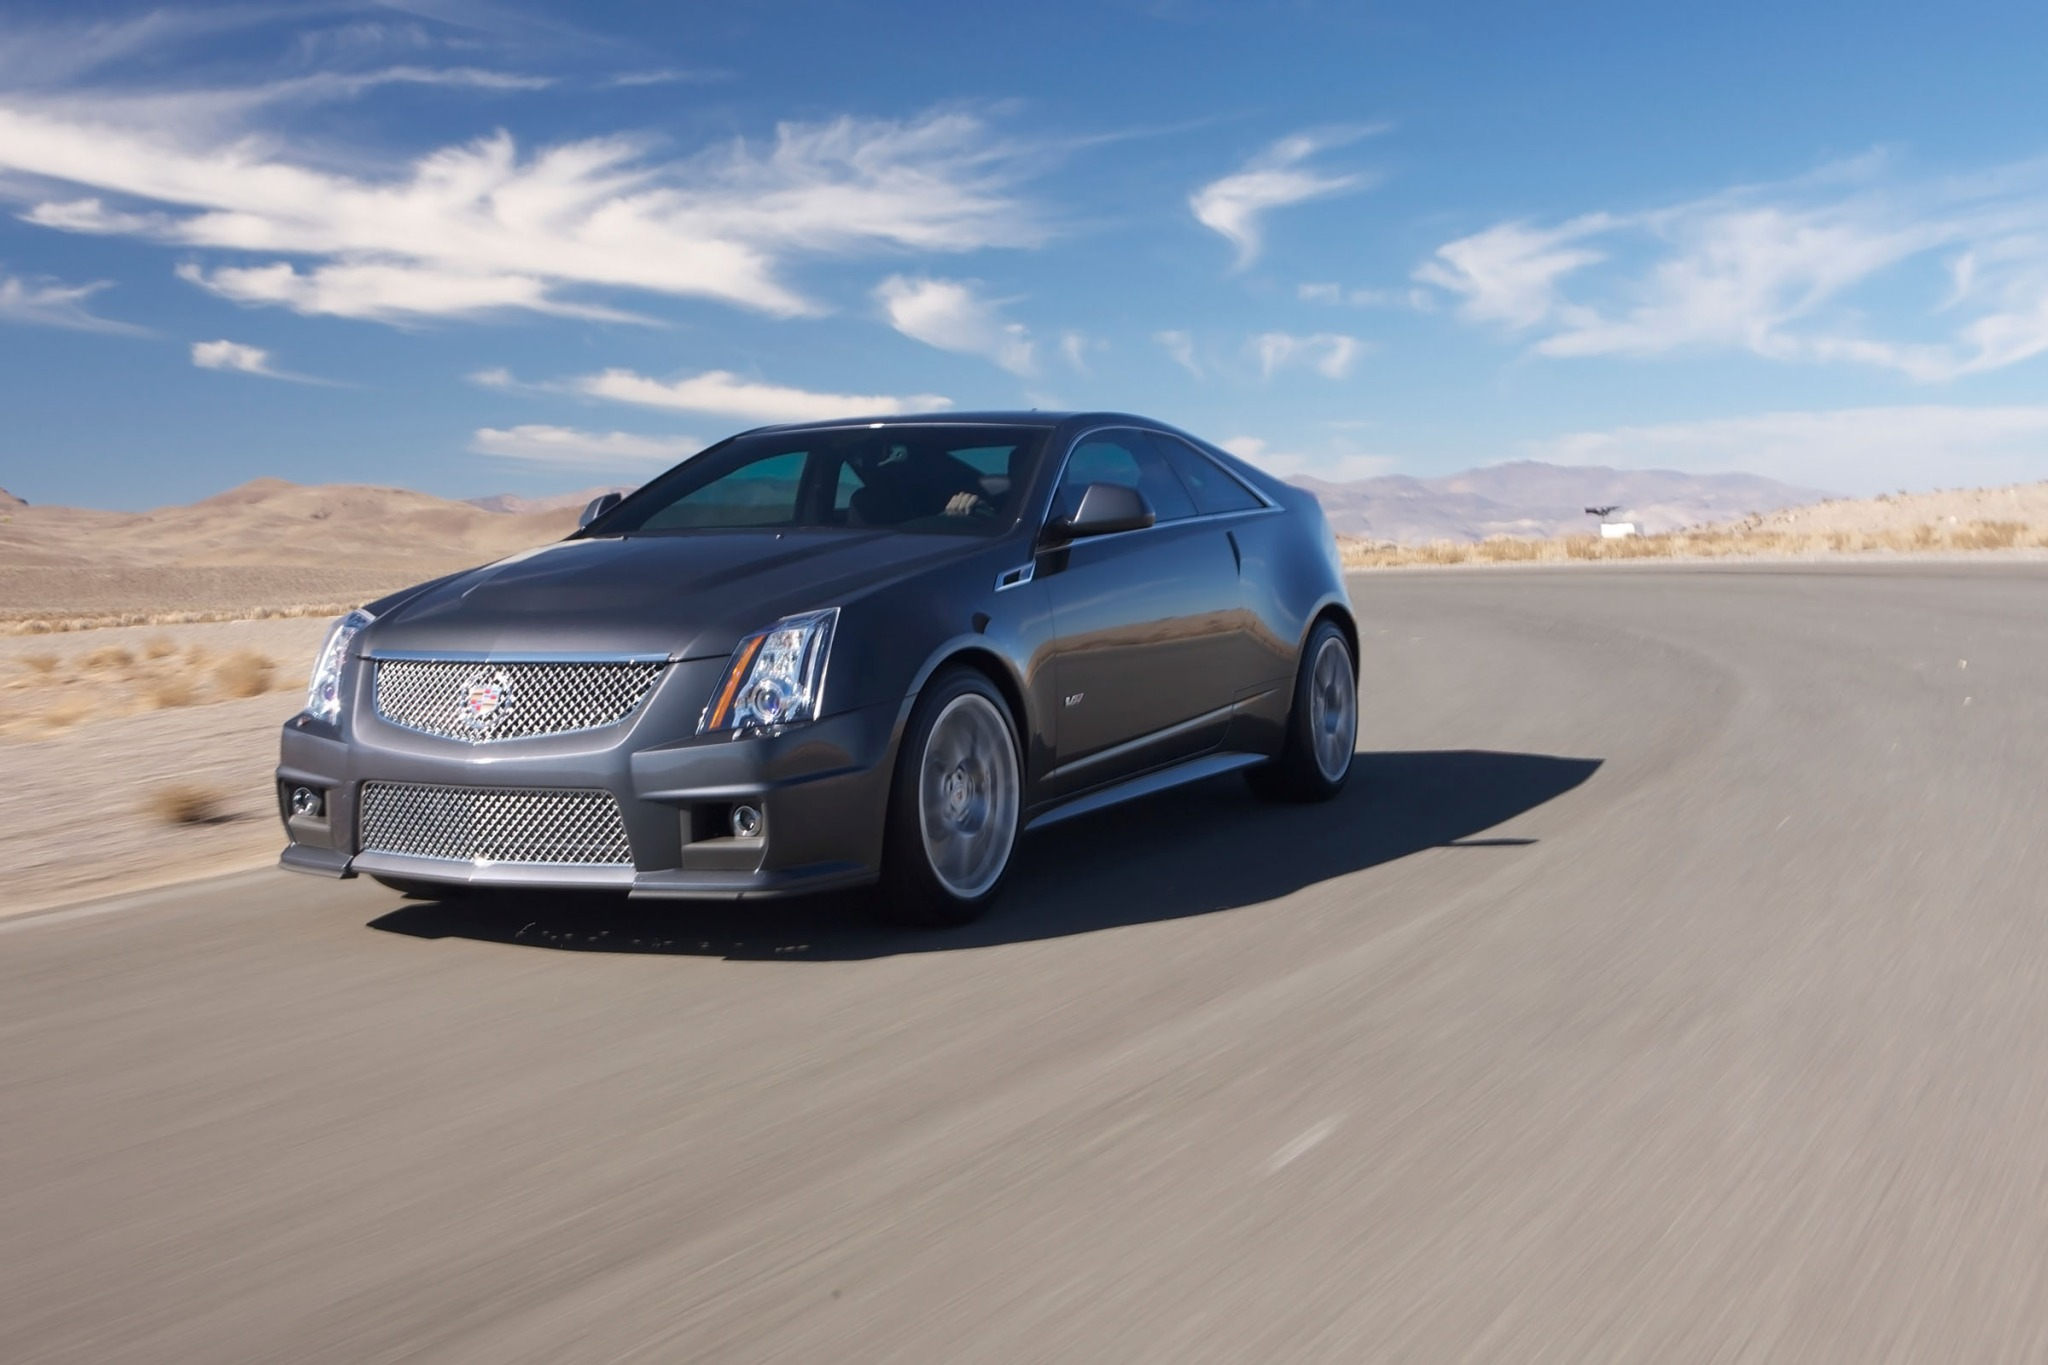 2012 Cadillac CTS-V Coupe exterior #3